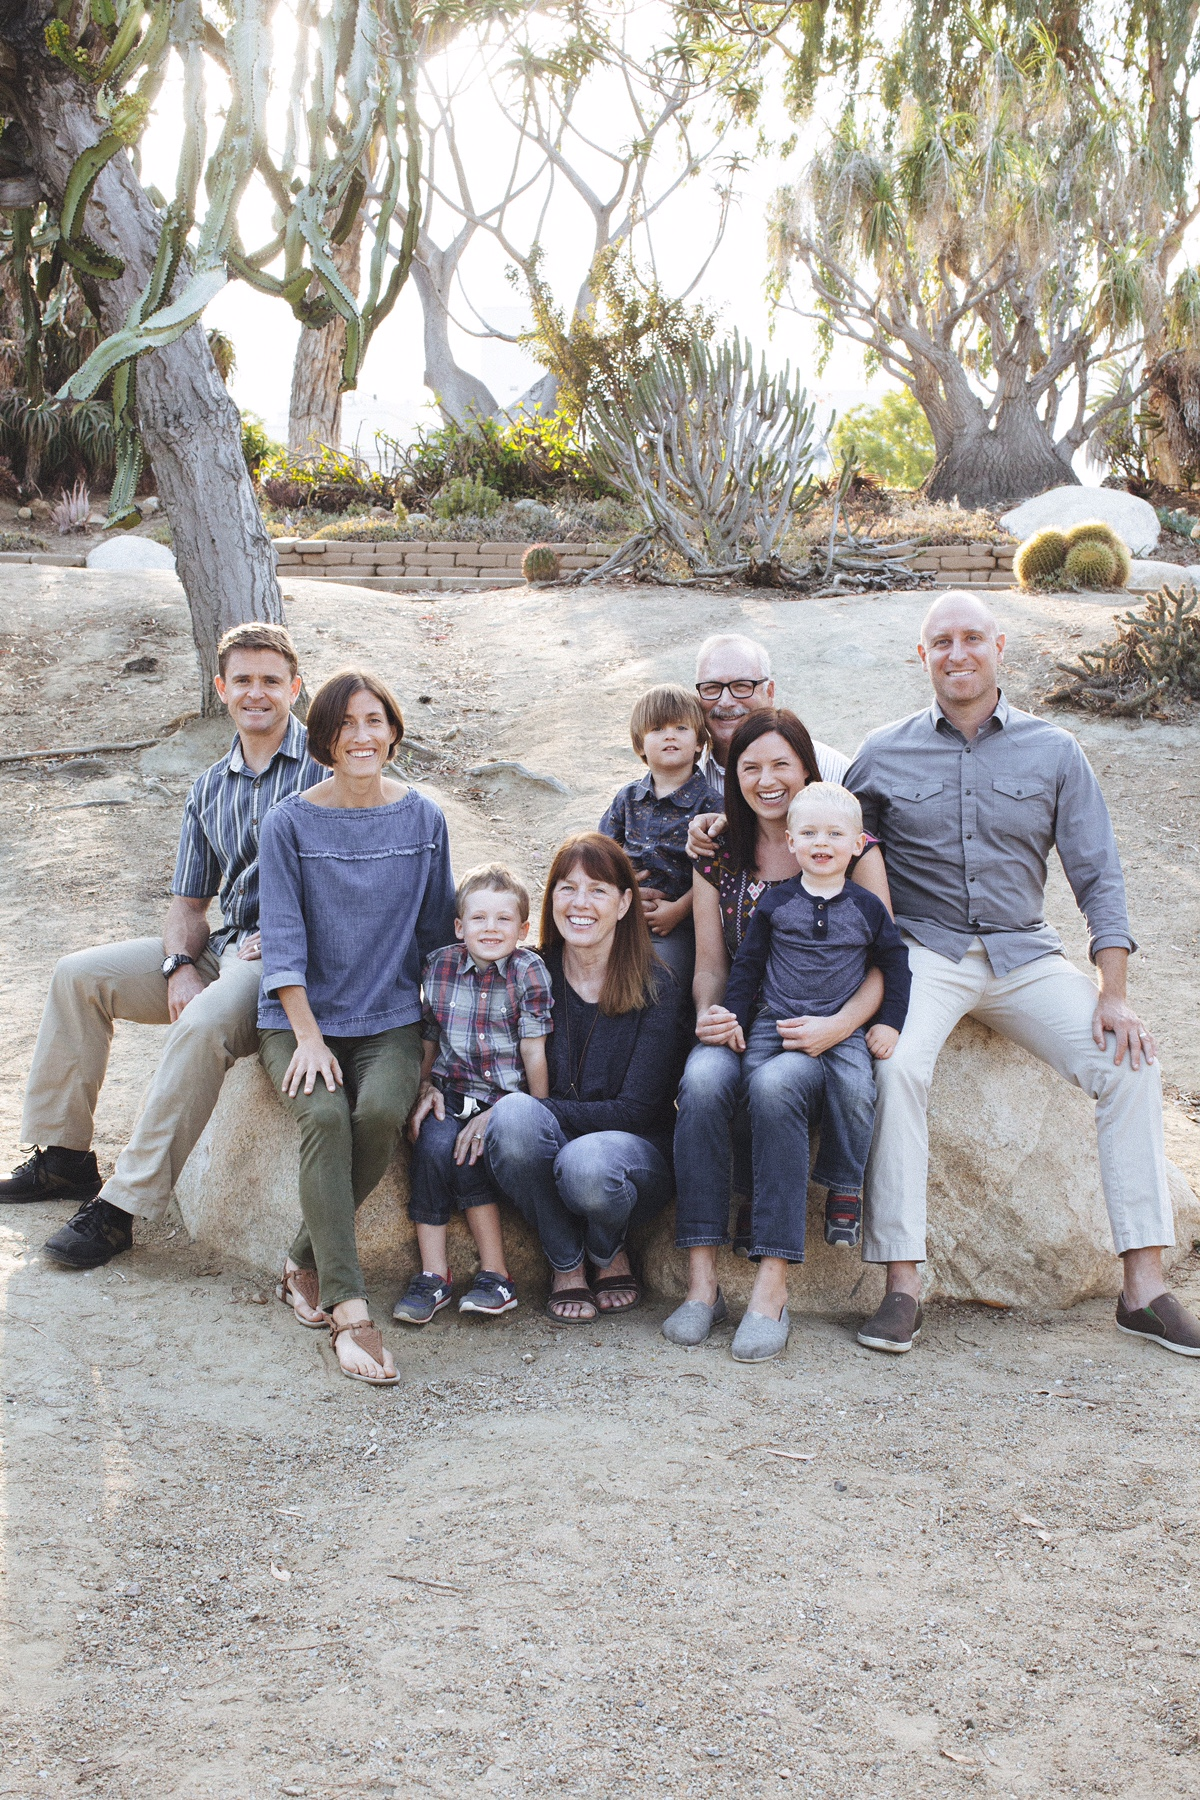 David with his wife Ann (lower seated) along with their two daughters, sons-in-law and grandchildren.